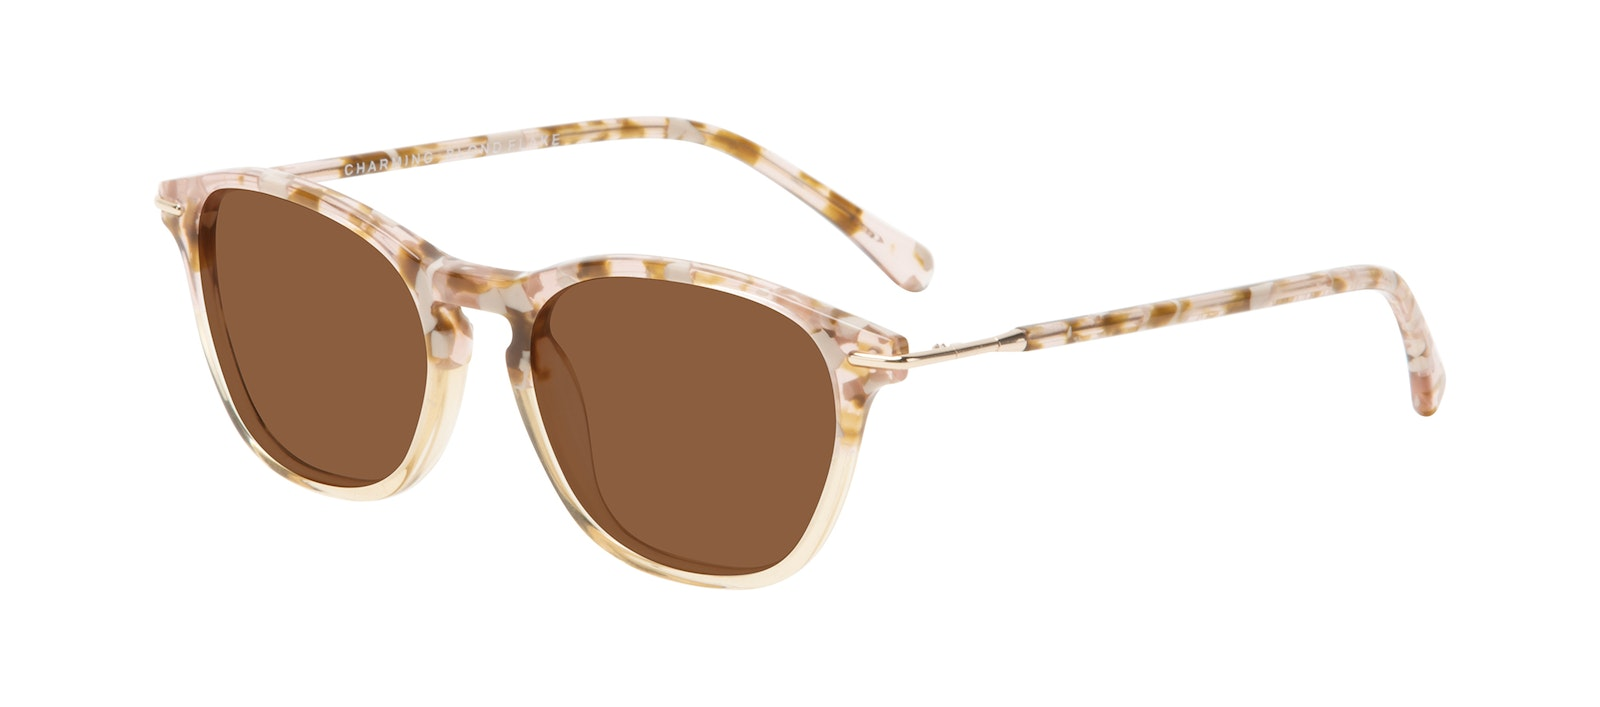 Affordable Fashion Glasses Square Sunglasses Women Charming Blond Flake Tilt